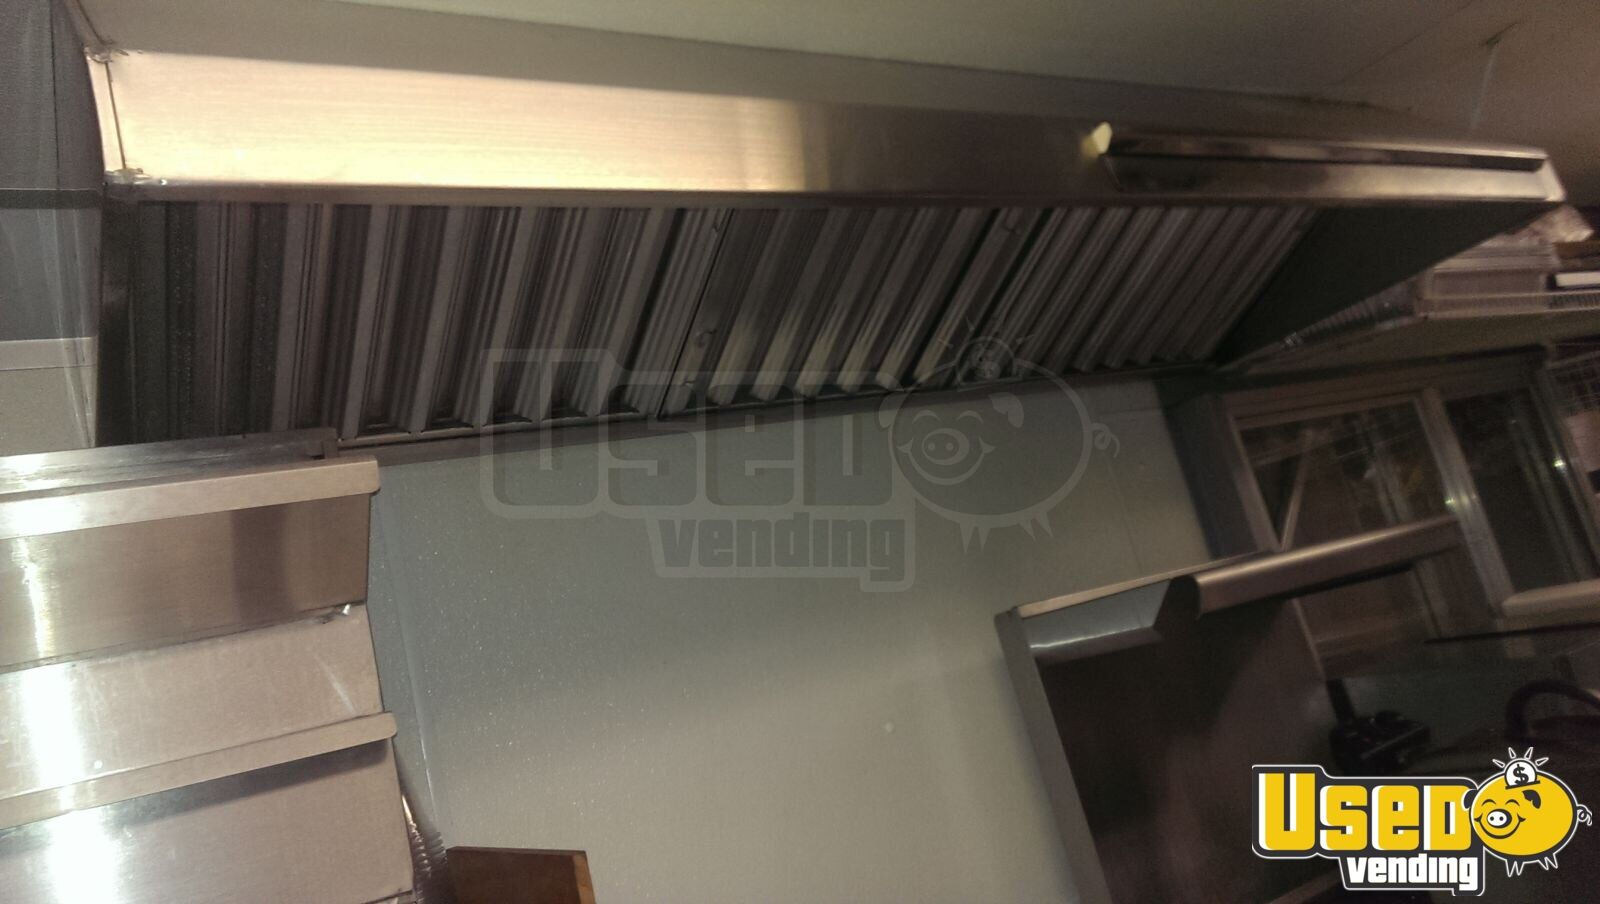 Wells Cargo BBQ Trailer in Kansas for Sale Used Concession Trailer #B89813